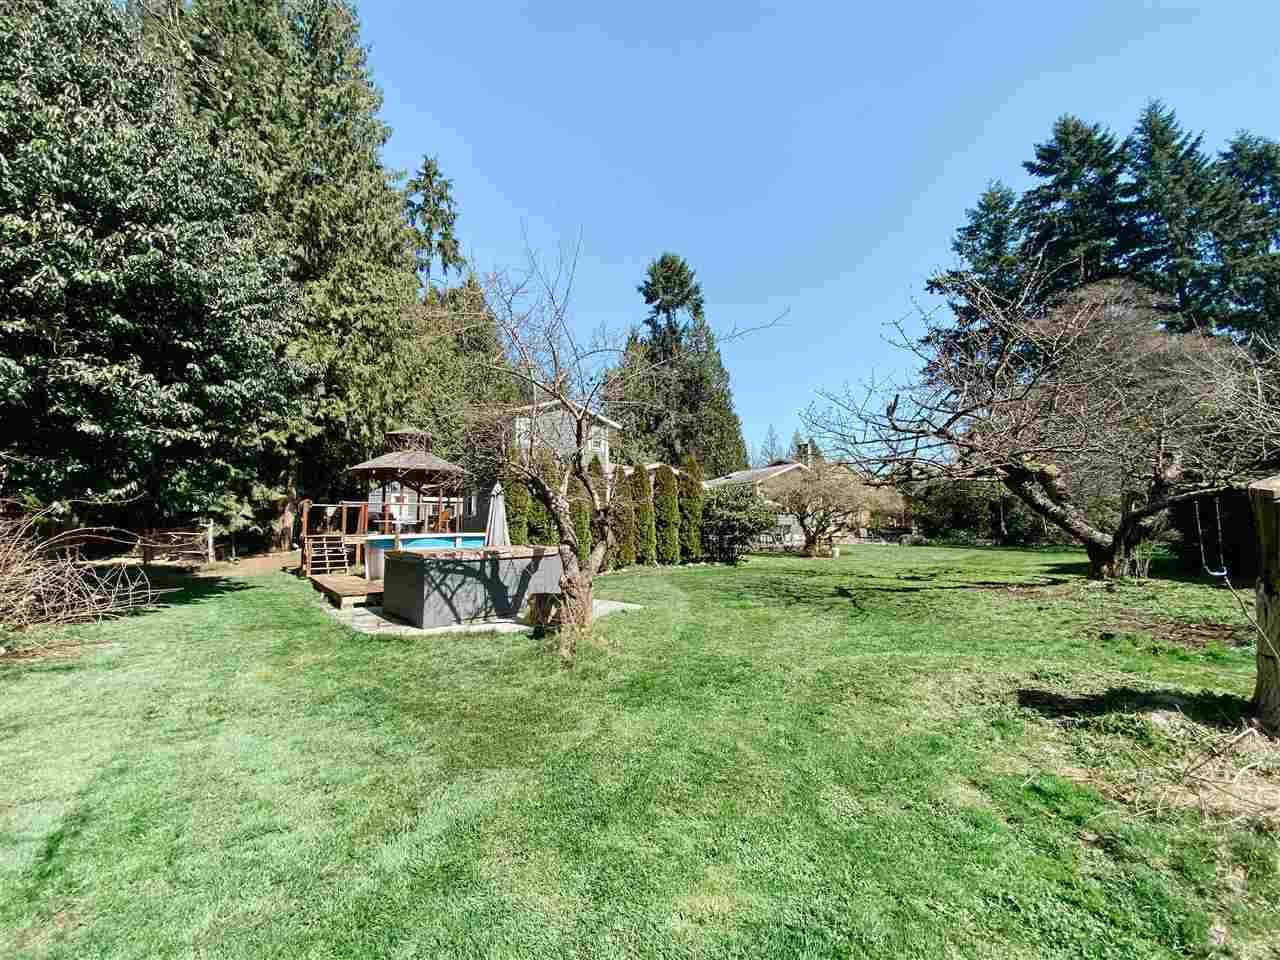 Photo 10: Photos: 1167 CHASTER Road in Gibsons: Gibsons & Area House for sale (Sunshine Coast)  : MLS®# R2449547